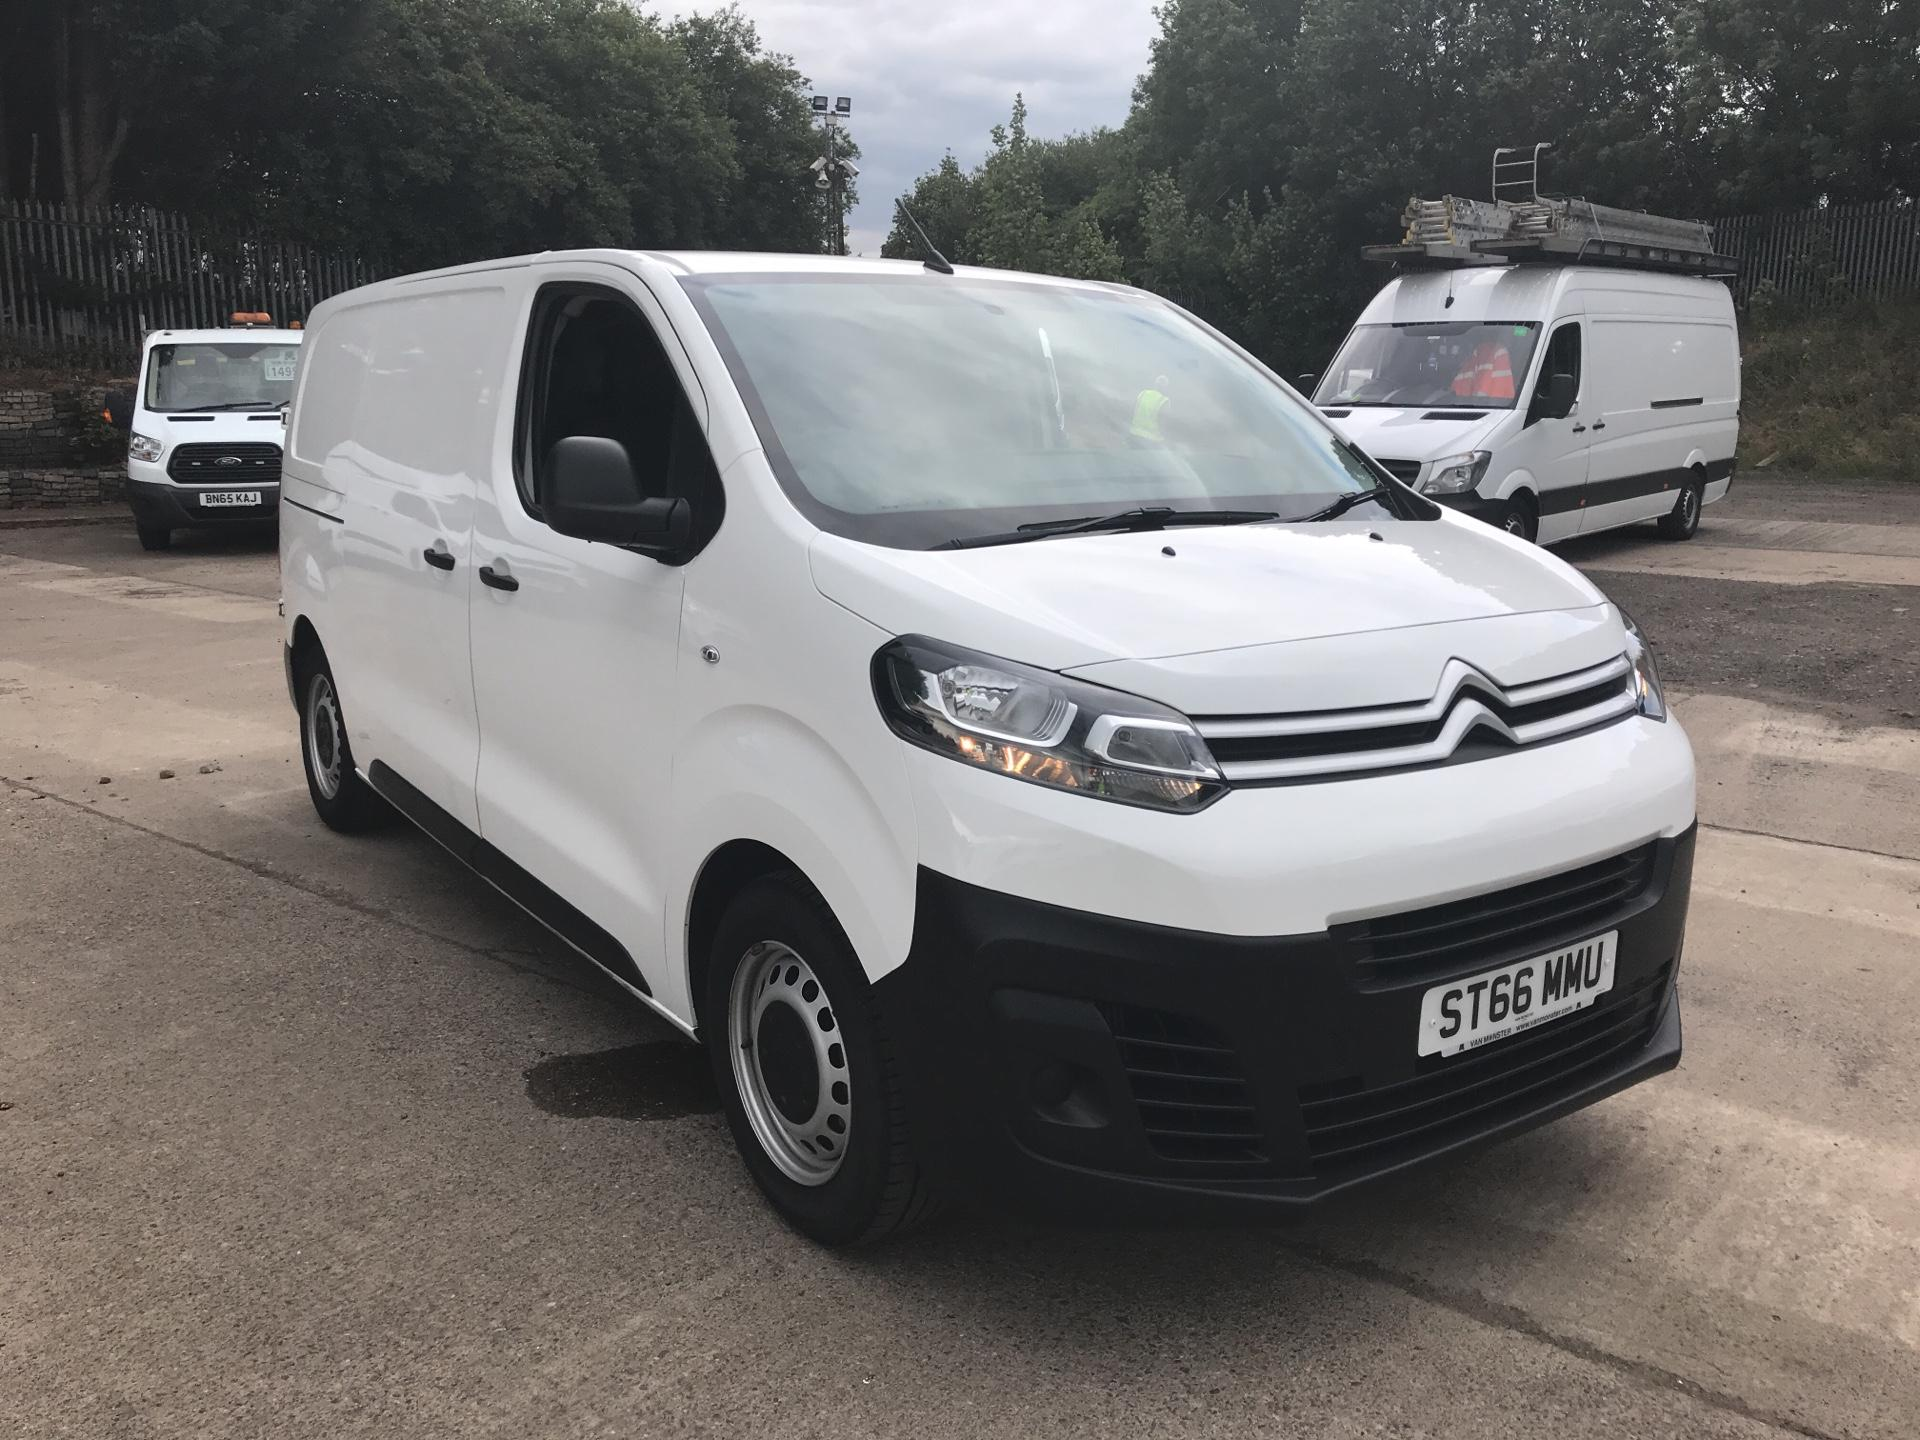 2016 Citroen Dispatch M DIESEL 1000 1.6 BLUEHDI 115PS VAN X EURO 6 (ST66MMU)